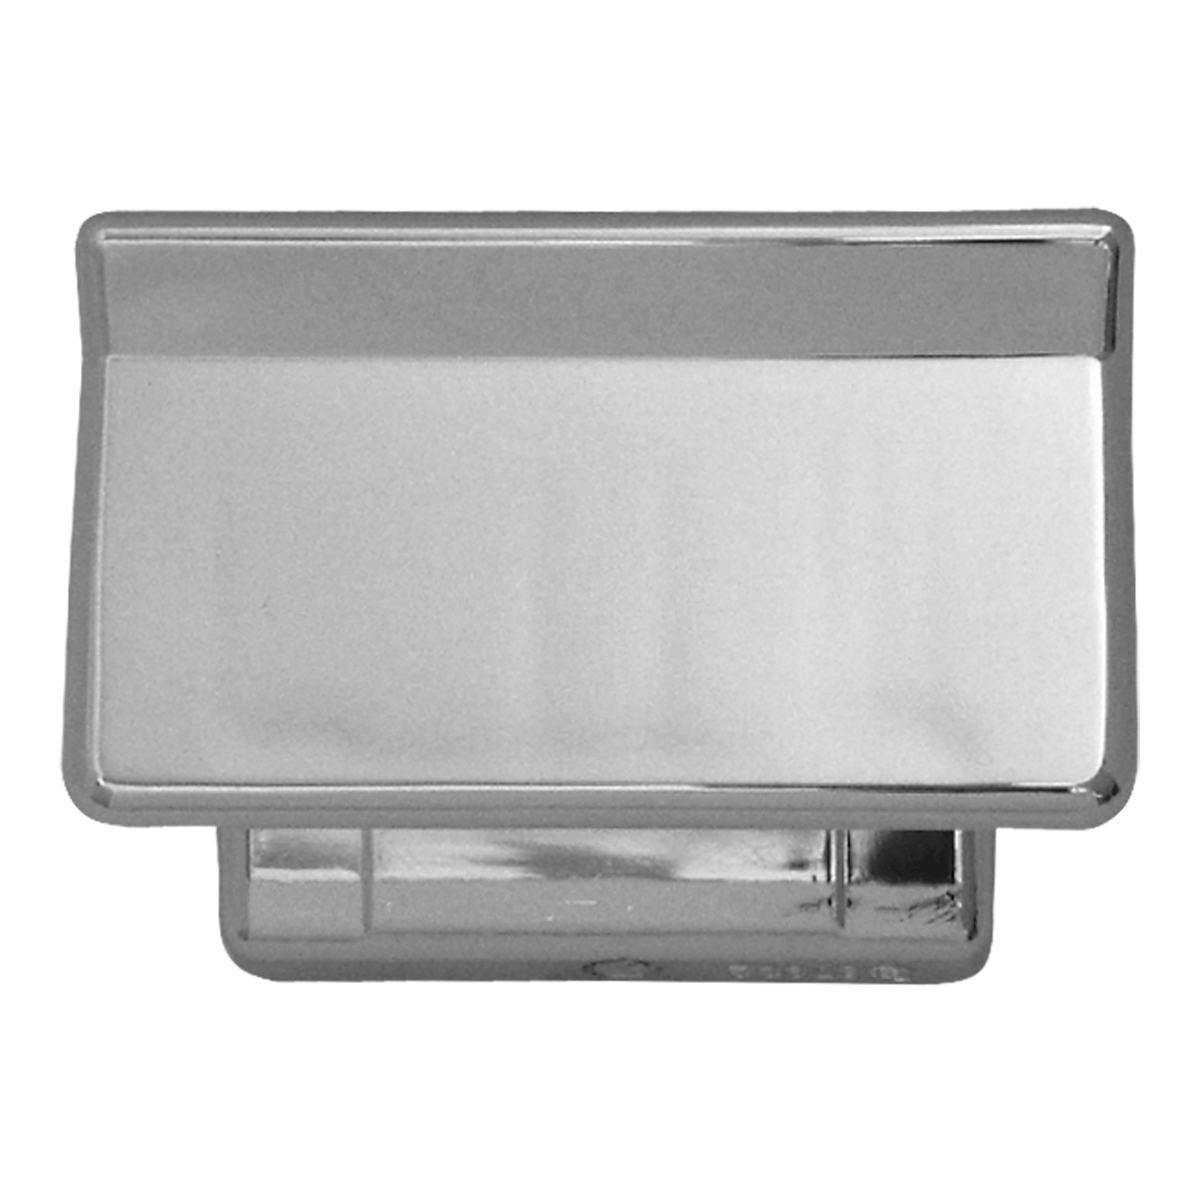 67932 Chrome Plastic Ash Tray for FL Century/Columbia/Coronado